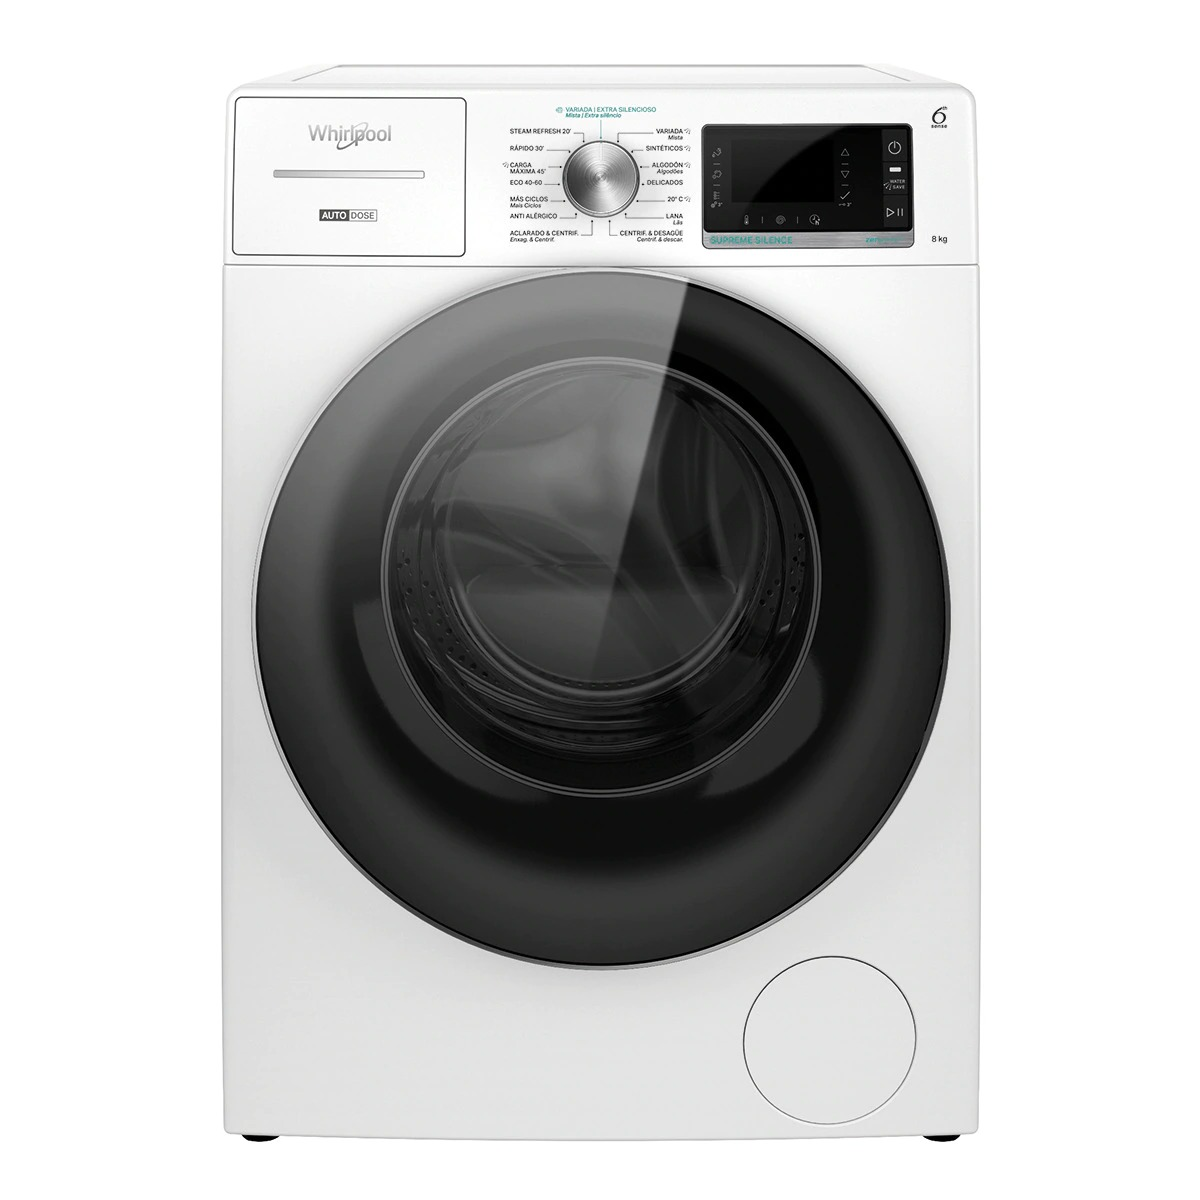 Whirlpool W8 W846WR SPT 8kg 1,300rpm Front Loading Washer